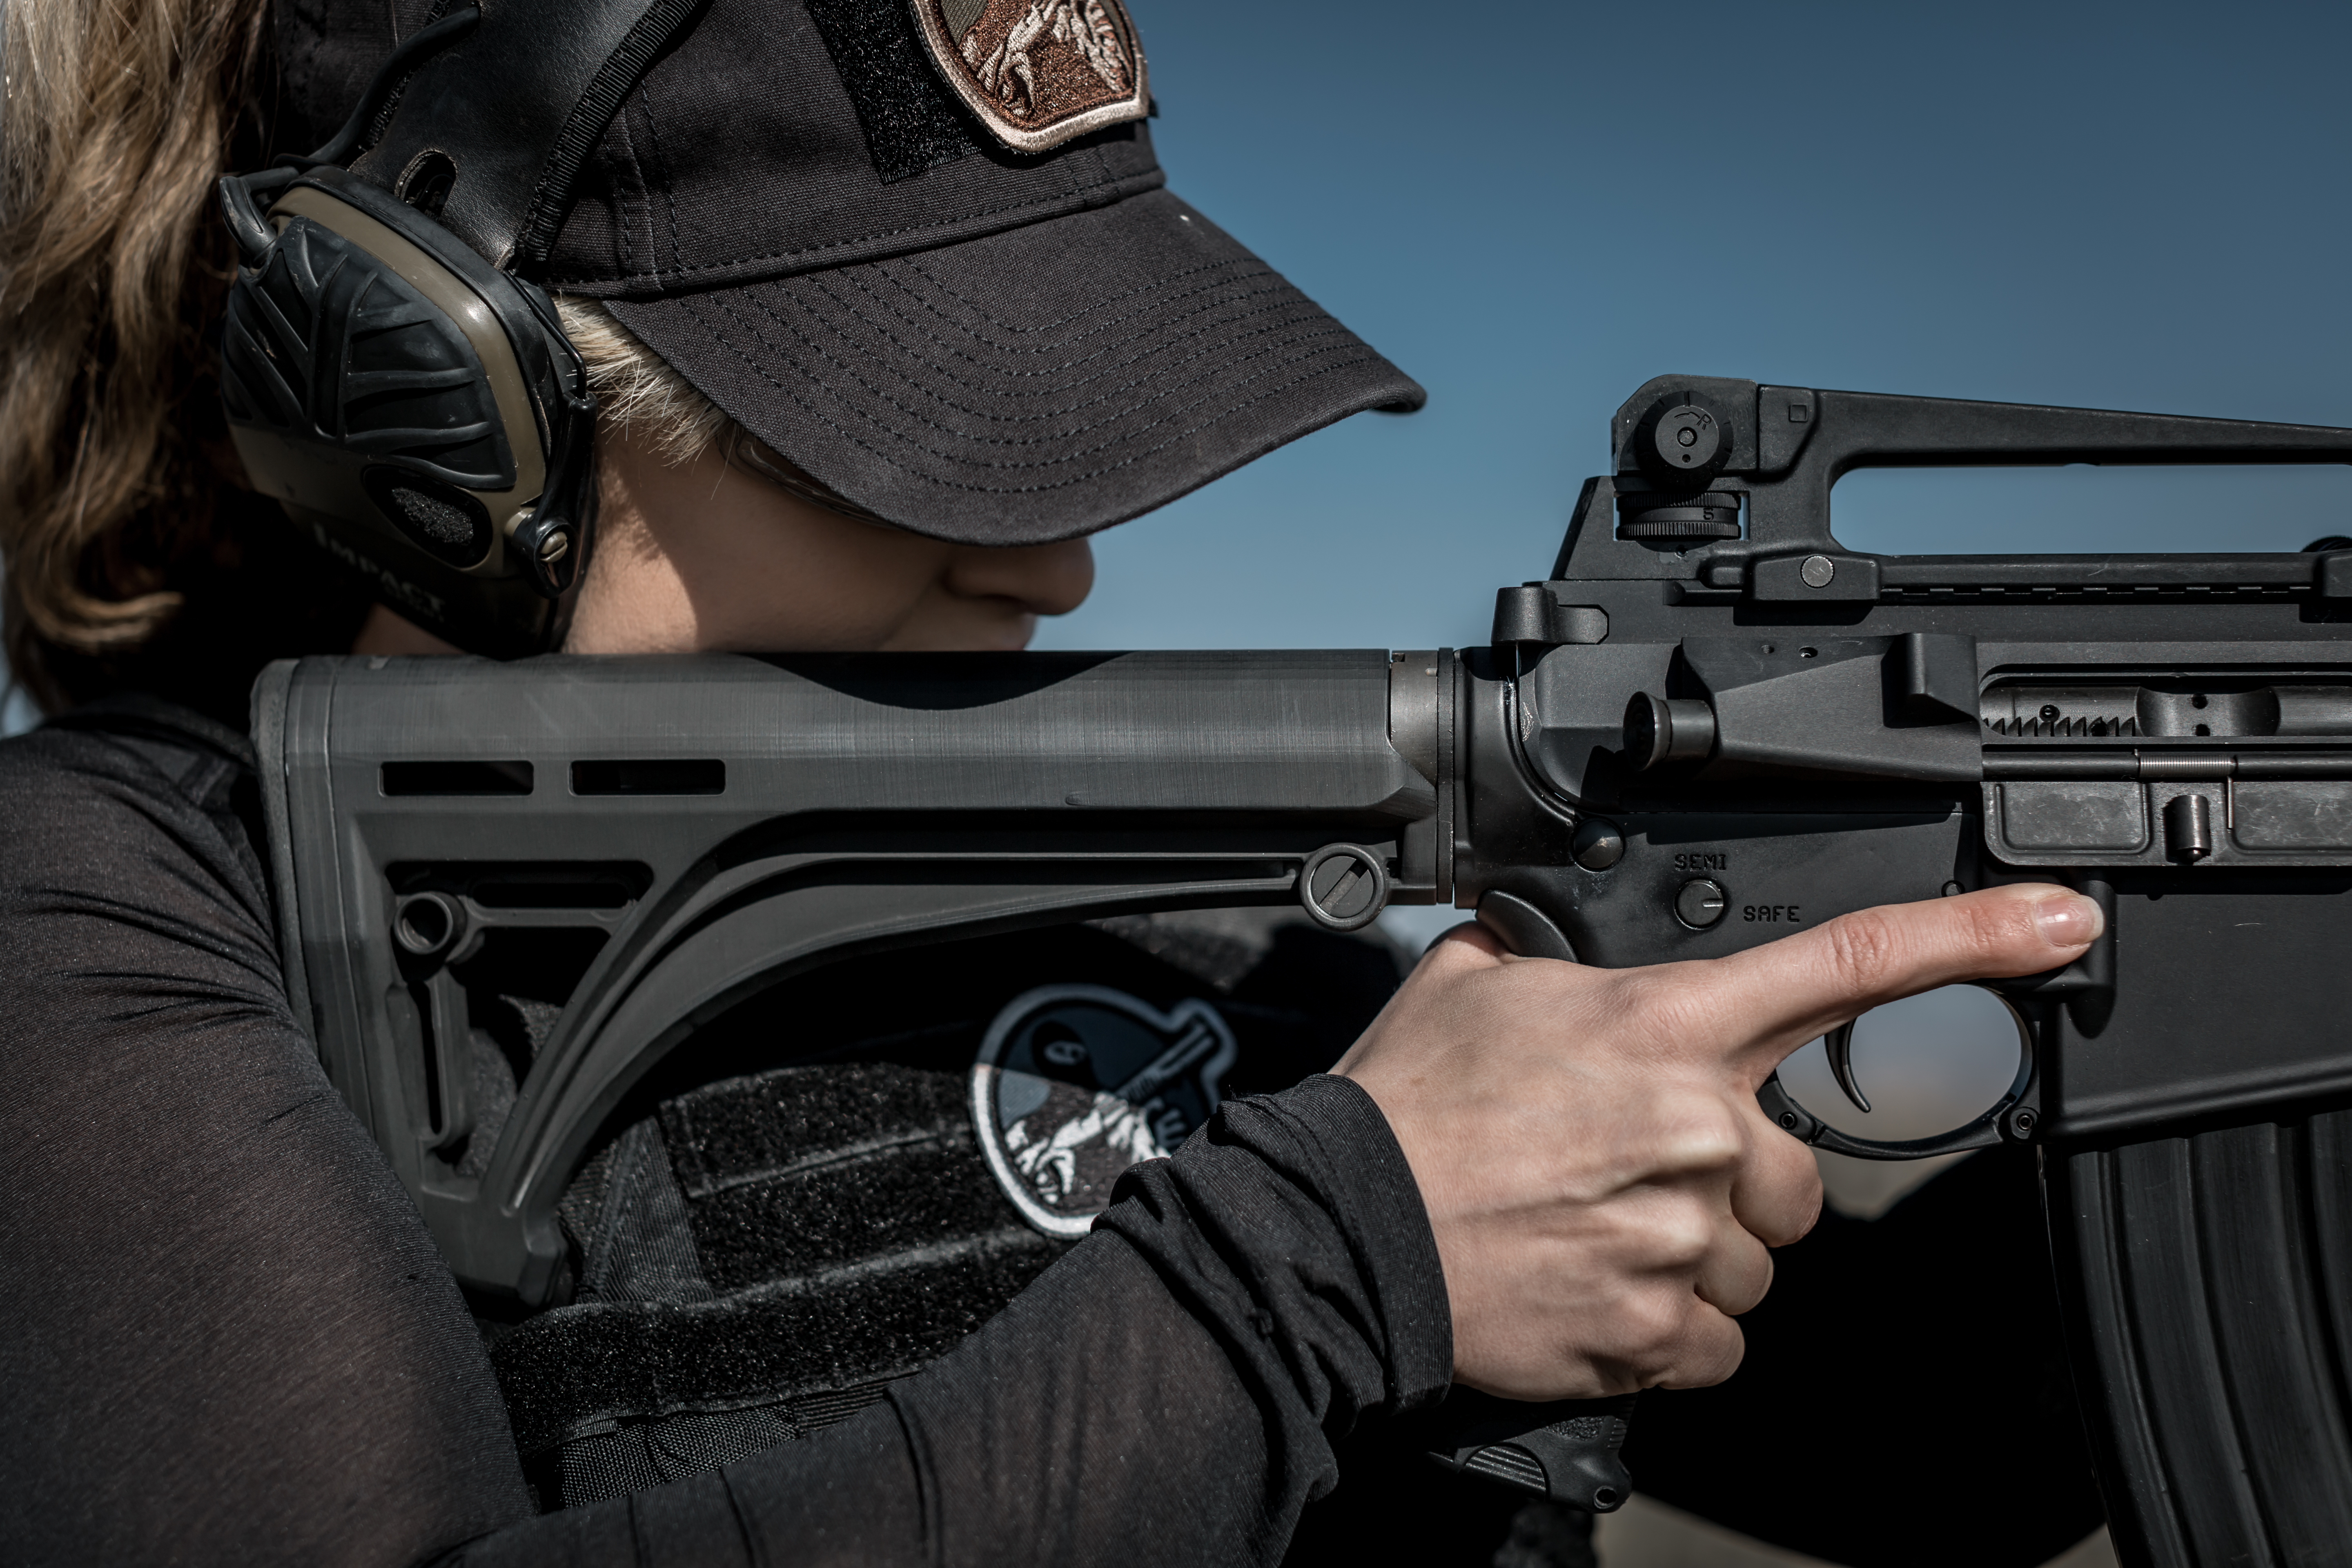 NEW Mesatac™ Black Rock™ stocks for AR-15 rifles and carbines